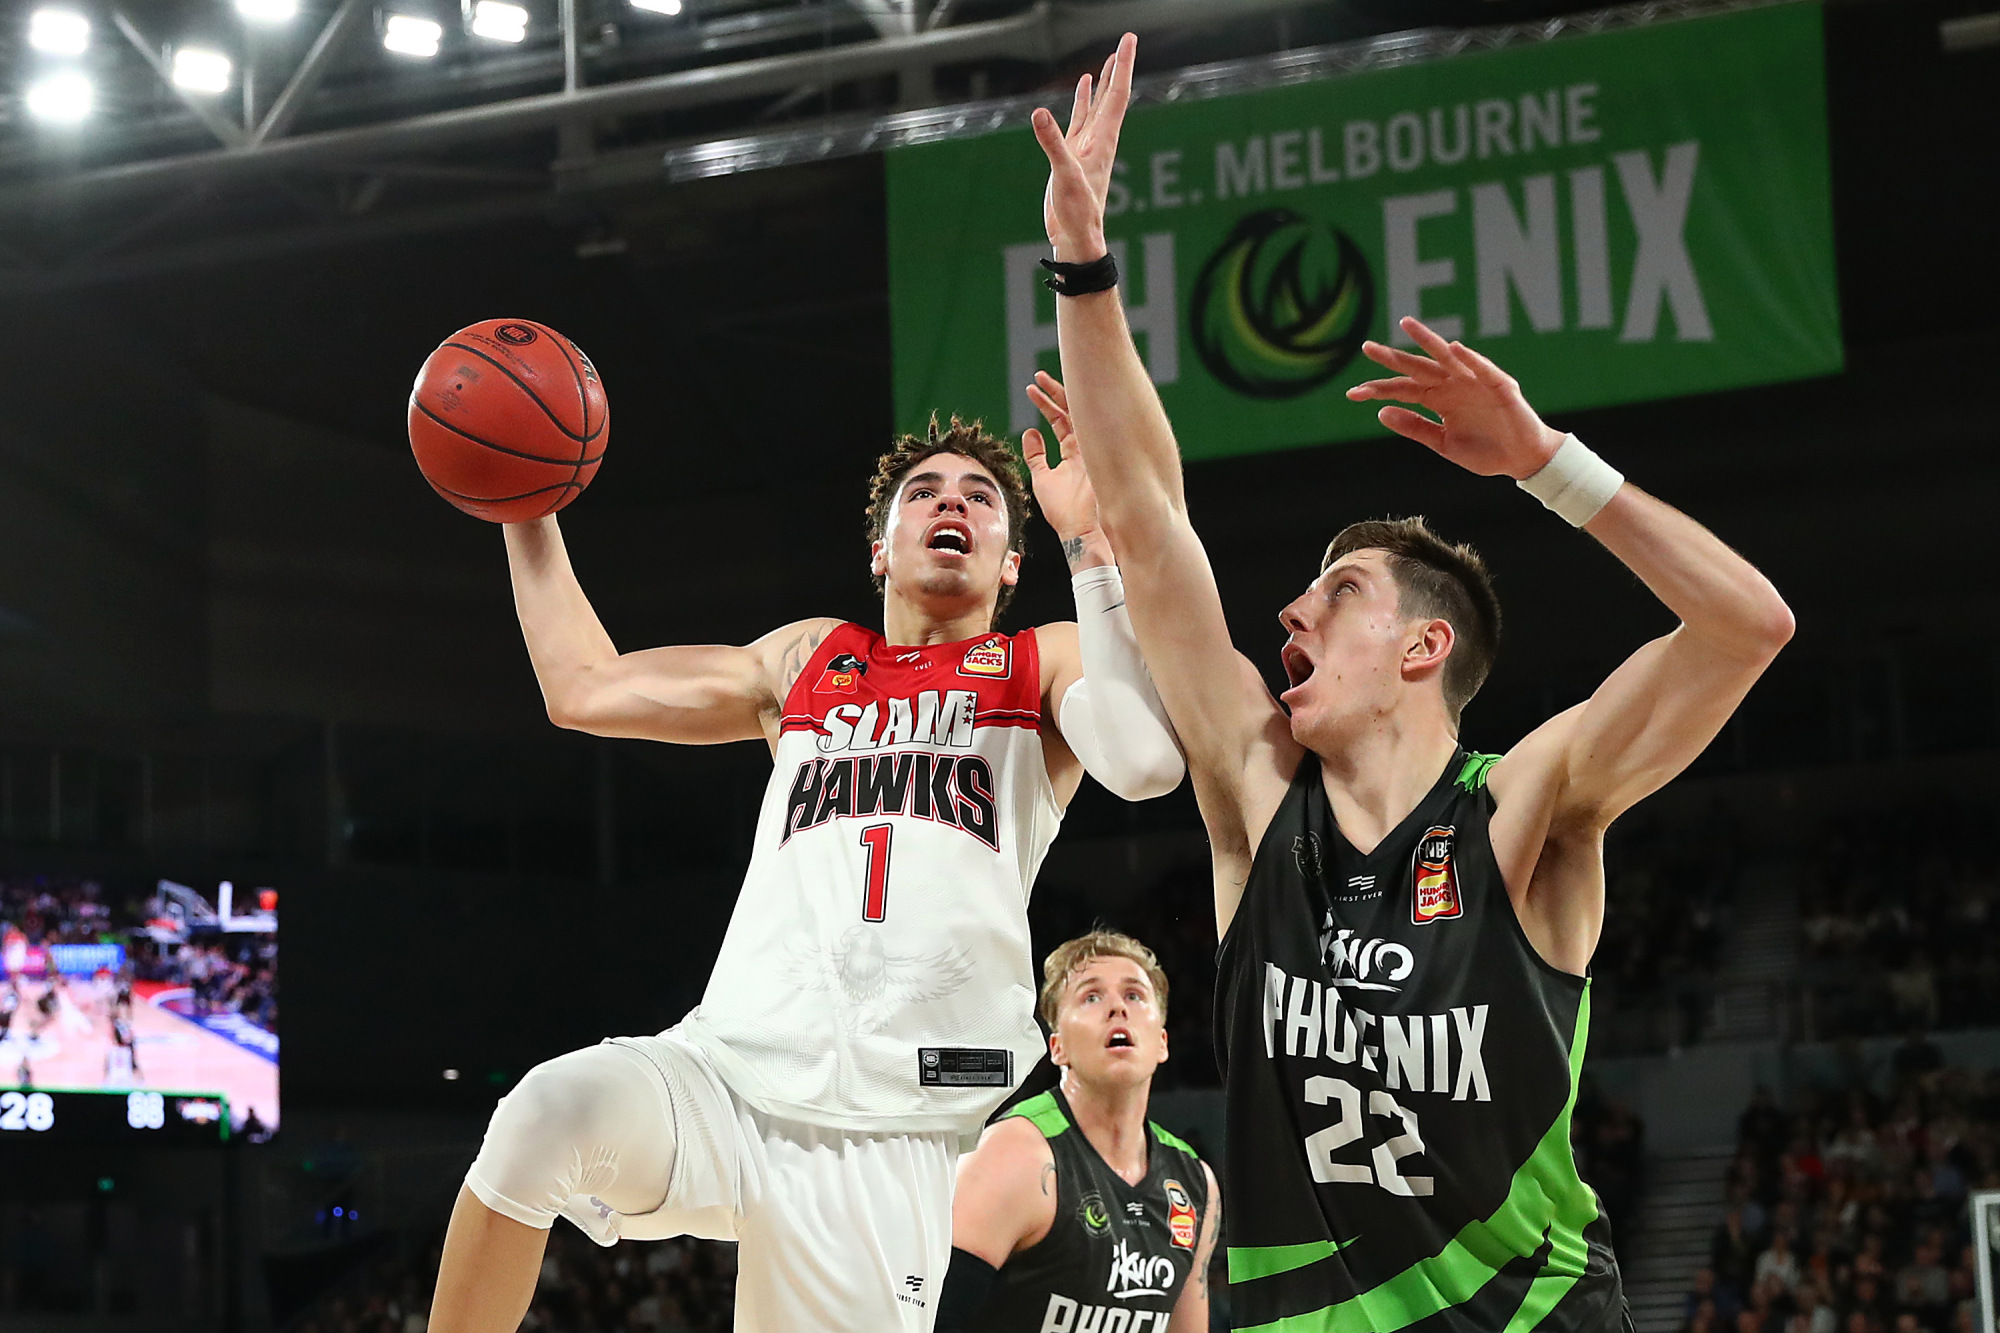 MELBOURNE, AUSTRALIA - OCTOBER 19: LaMelo Ball of the Hawks drives to the basket during the round three NBL match between the South East Melbourne Phoenix and the Illawarra Hawks on October 19, 2019 in Melbourne, Australia.